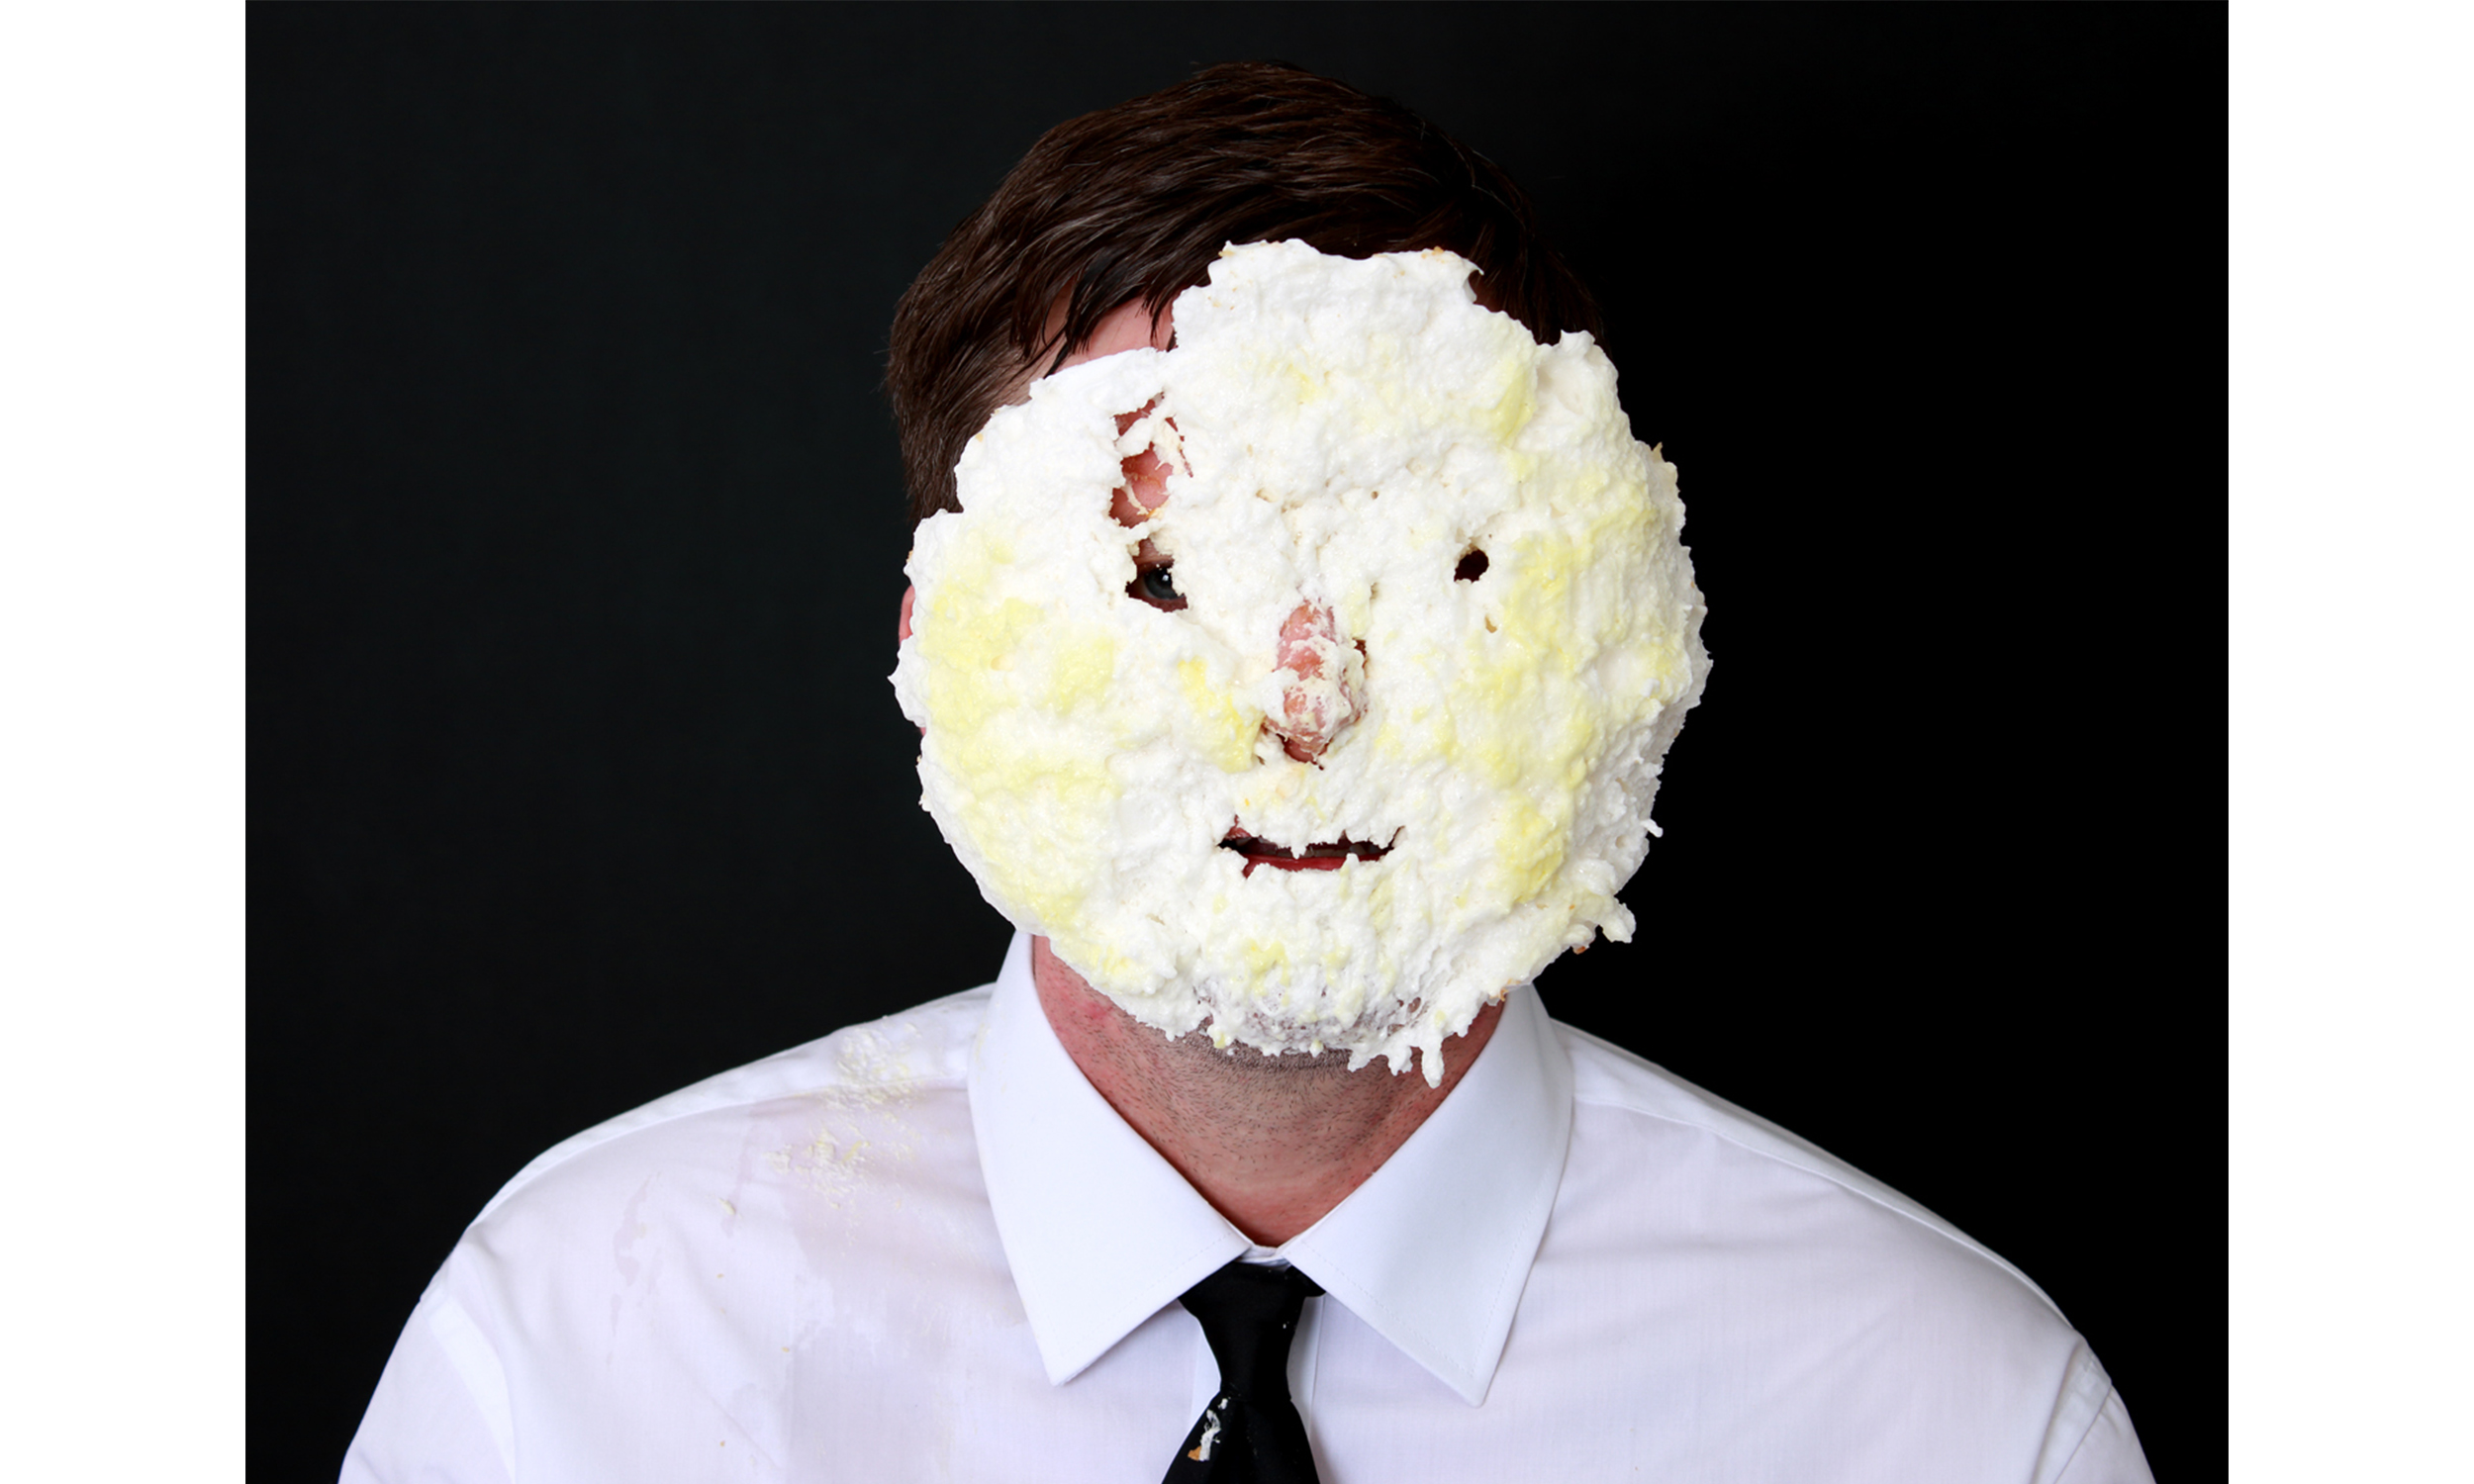 Untitled Self-Portrait with Banana Cream Pie 2  2016 Archival pigment print 36h x 48w in